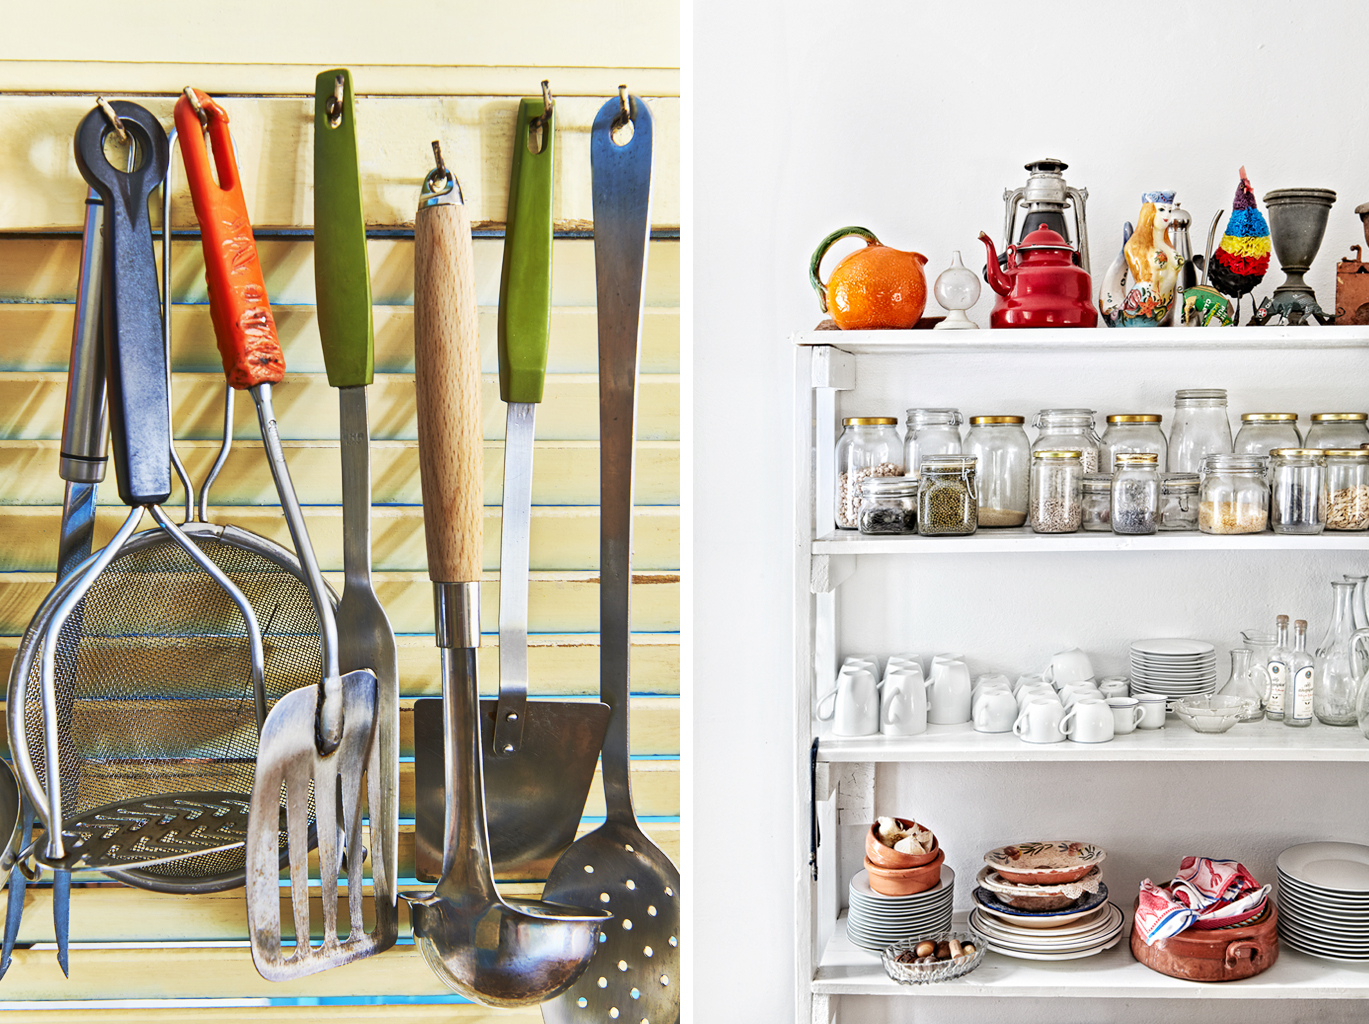 The kitchen.  silver island photography photographer food photographer london britain uk recipe cookbook cook book ingredients travel greece sunshine bright vibrant delicious tasty method trees rustic daylight plates bowls cabinets plate bowl mug mugs bottles jug dresser pulses pulse lentils nuts kilner jars jar jam utensils fish slice mash ladle slotted spoon hanging